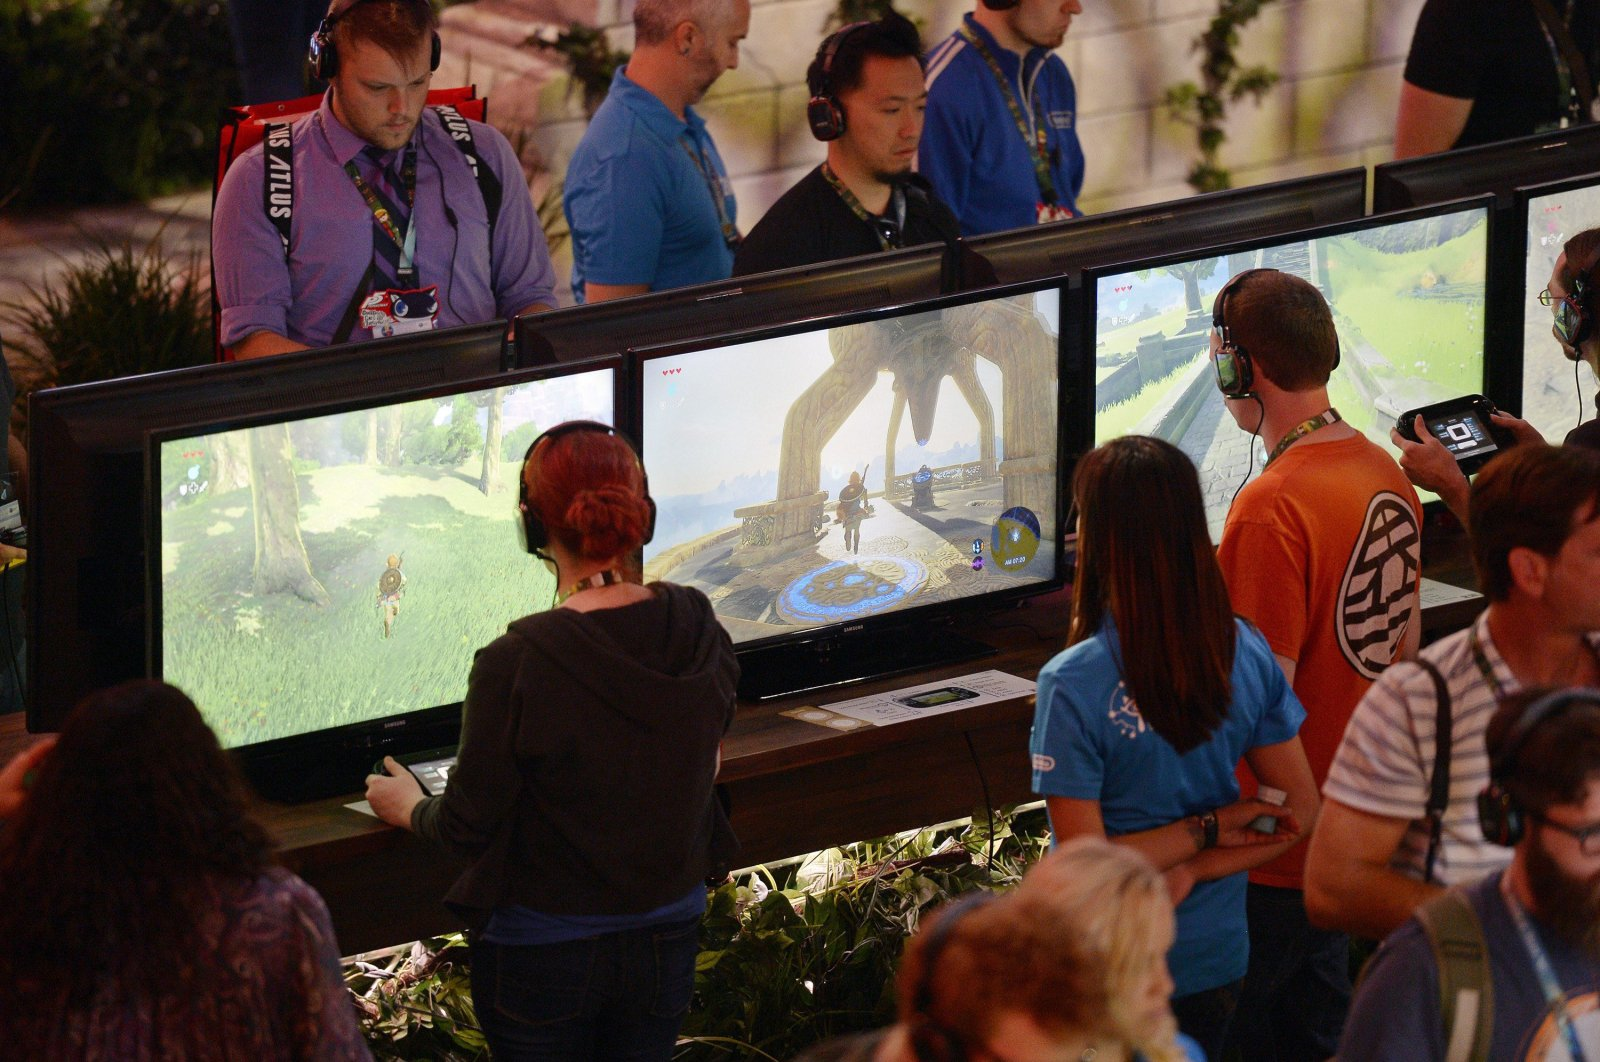 """Gamers try out """"The Legend of Zelda: Breath of the Wild"""" in the Nintendo booth during the annual E3 2016 gaming conference at the Los Angeles Convention Center in Los Angeles, California, June 14, 2016.  (AFP File Photo)"""